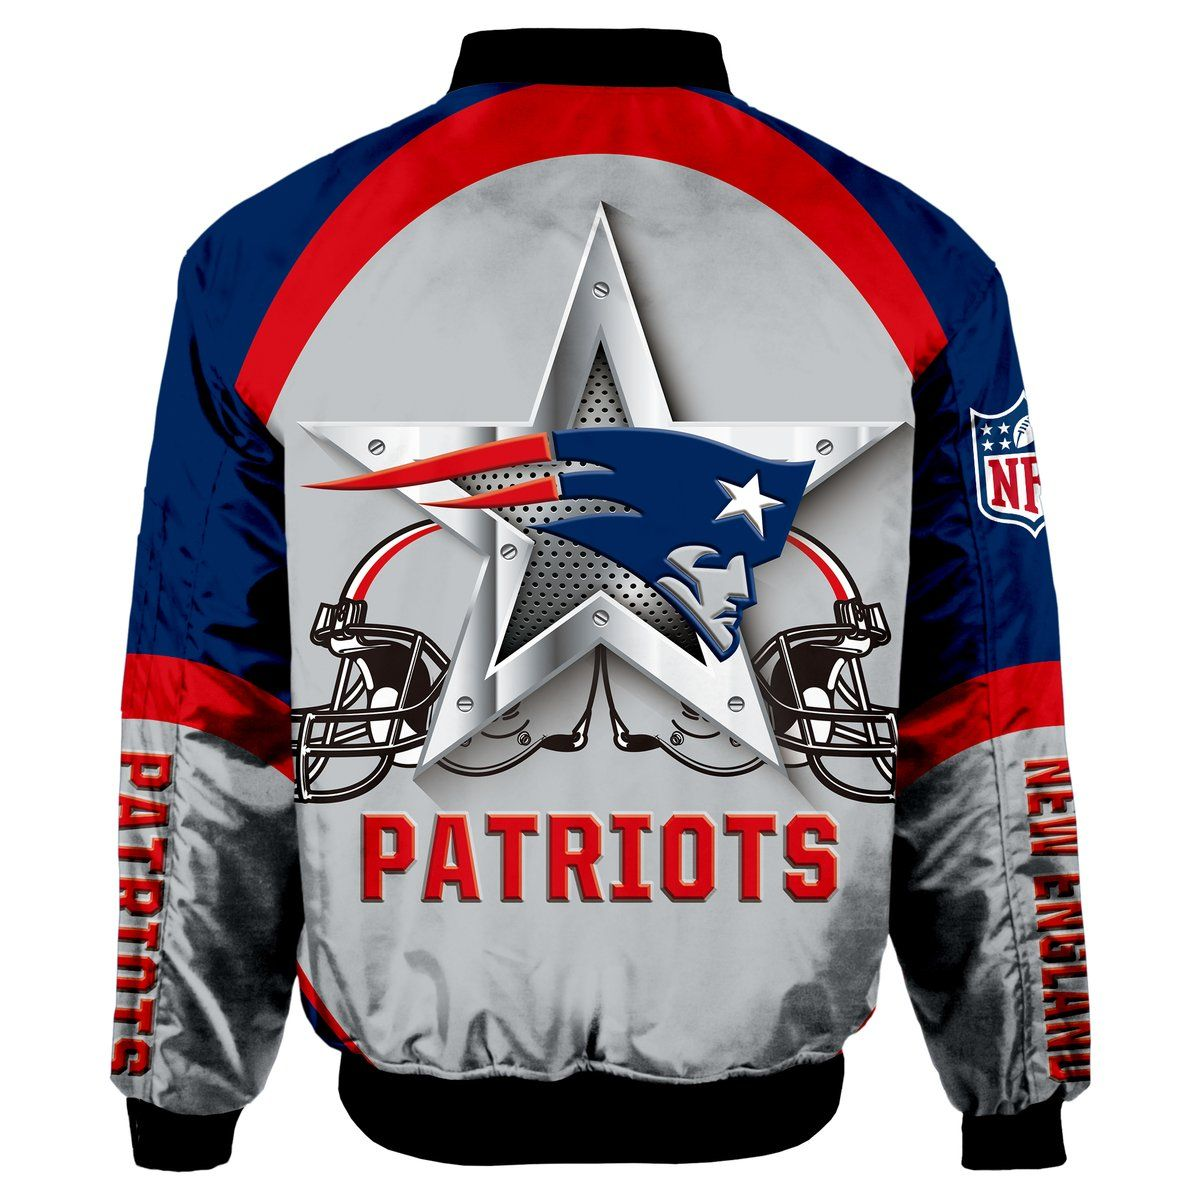 New England Patriots Bomber Jacket Graphic Player Running Jackets Sweatshirt Outfit Bomber Jacket